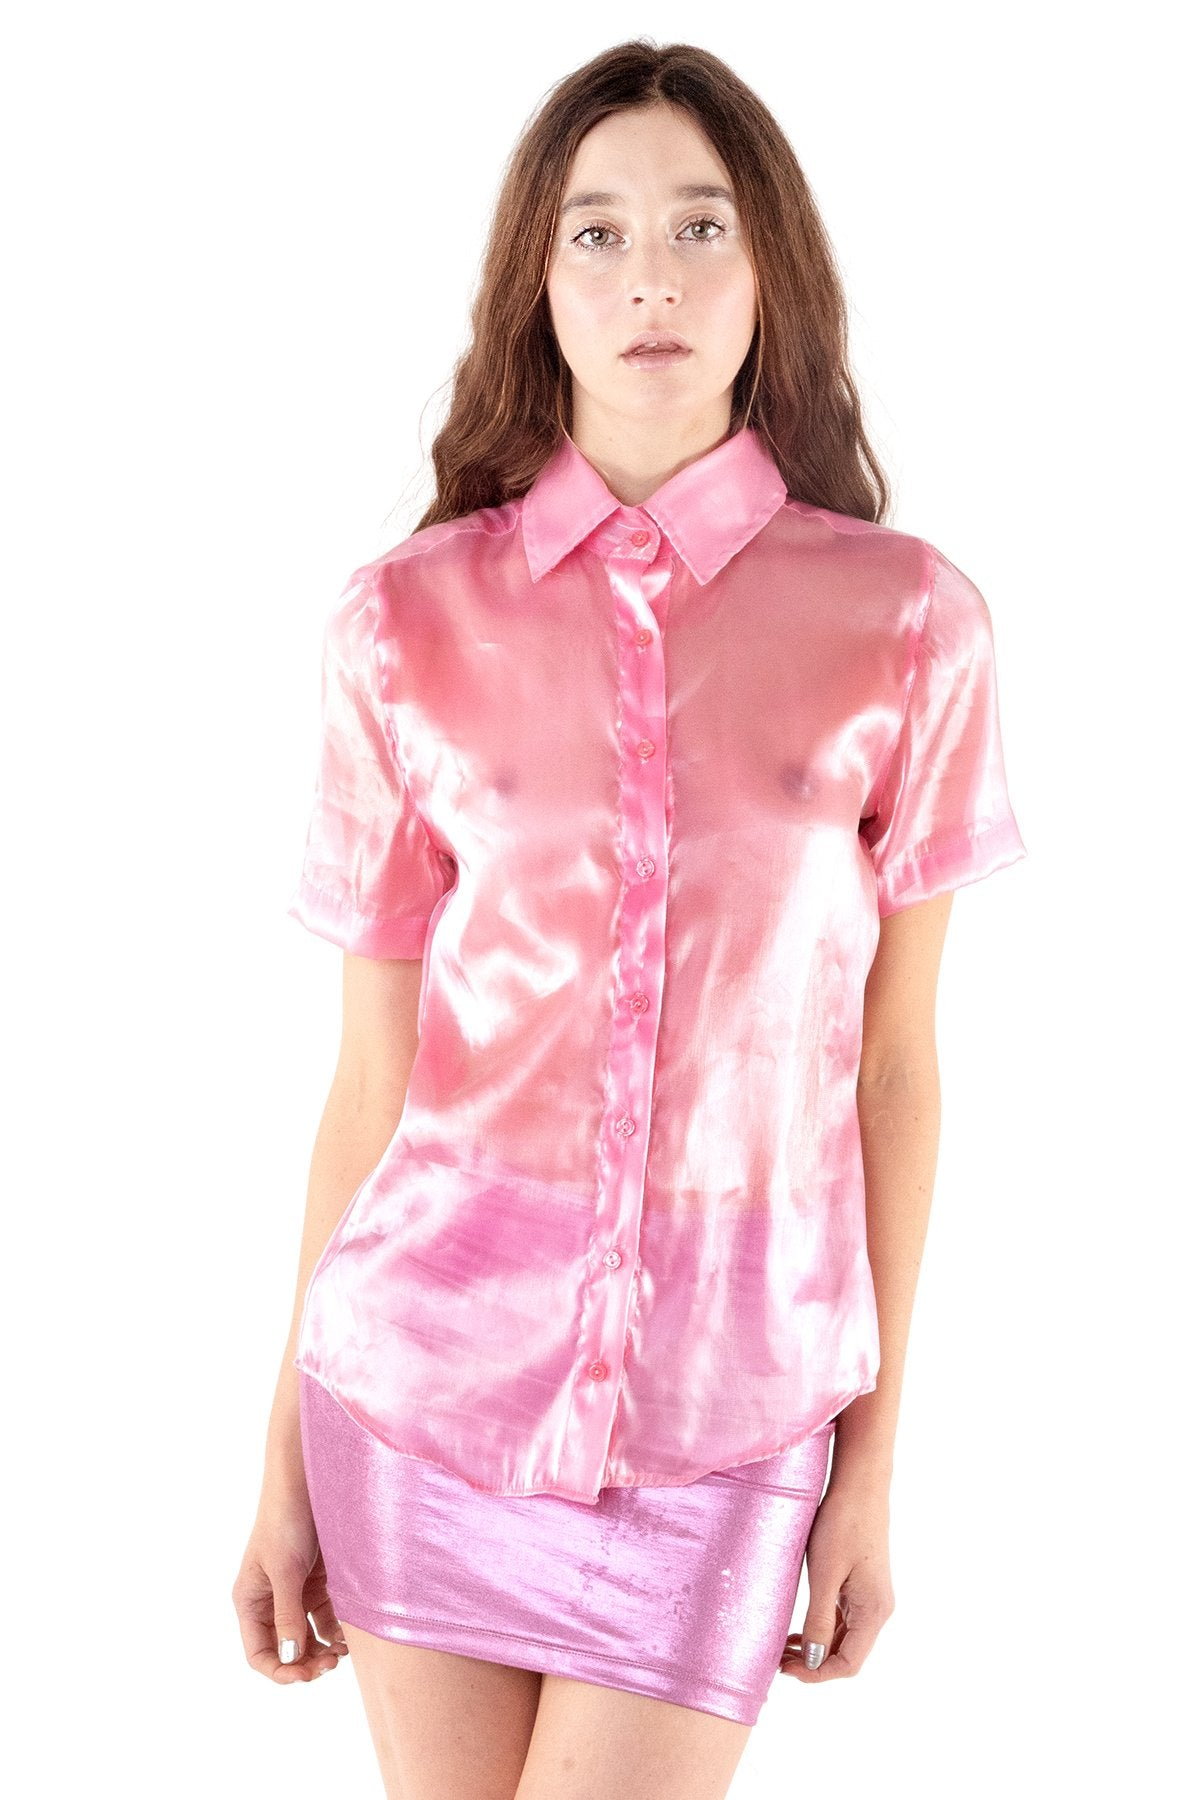 S0 C-THRU BUTTON UP BLOUSE